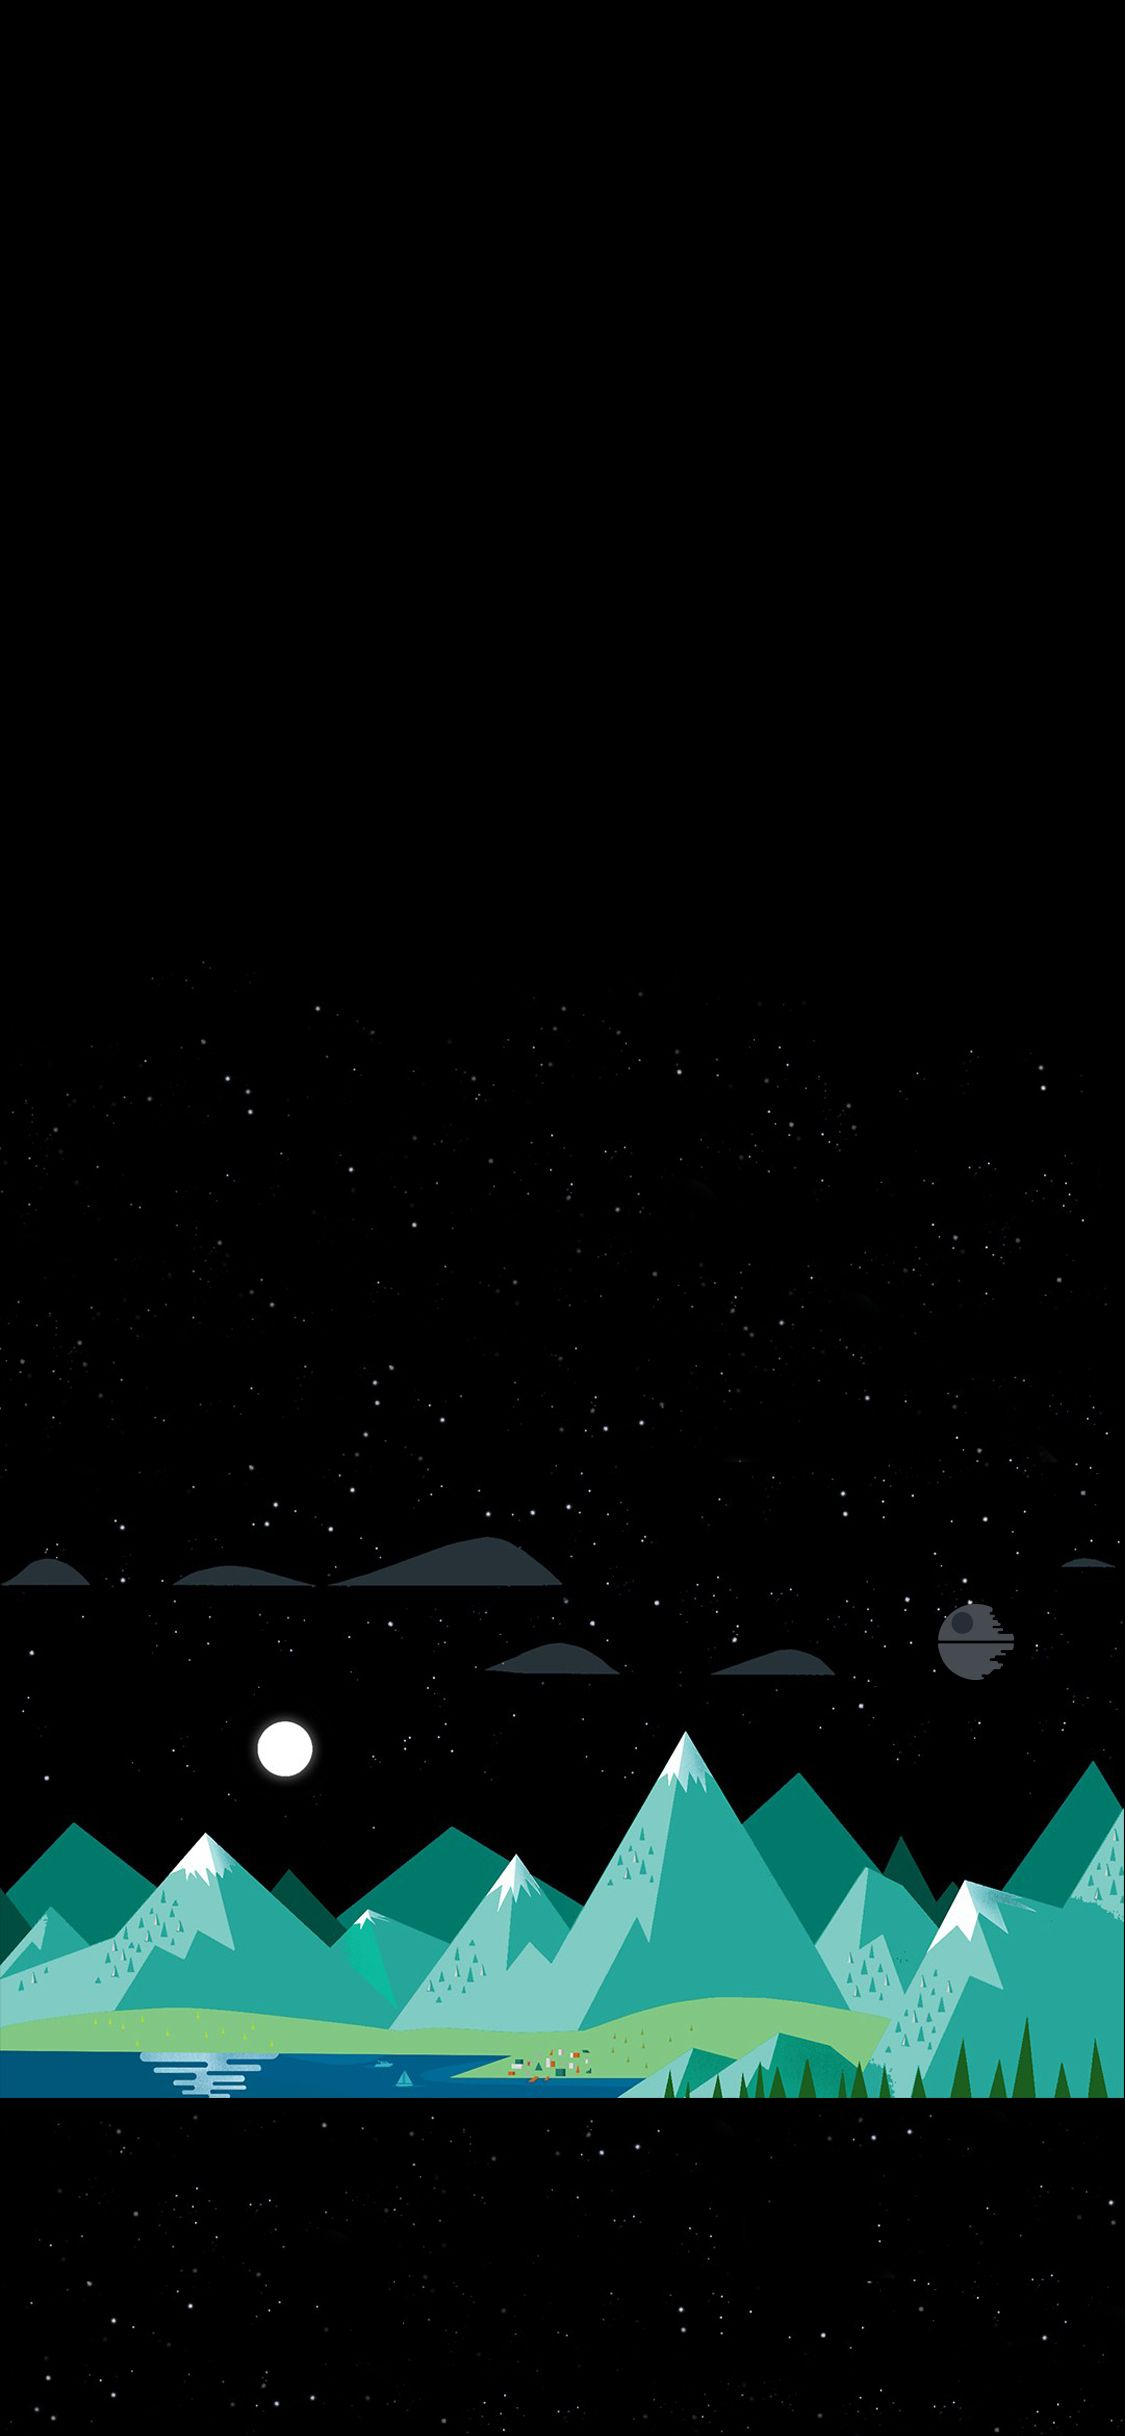 OLED Black Wallpapers - Top Free OLED Black Backgrounds ...